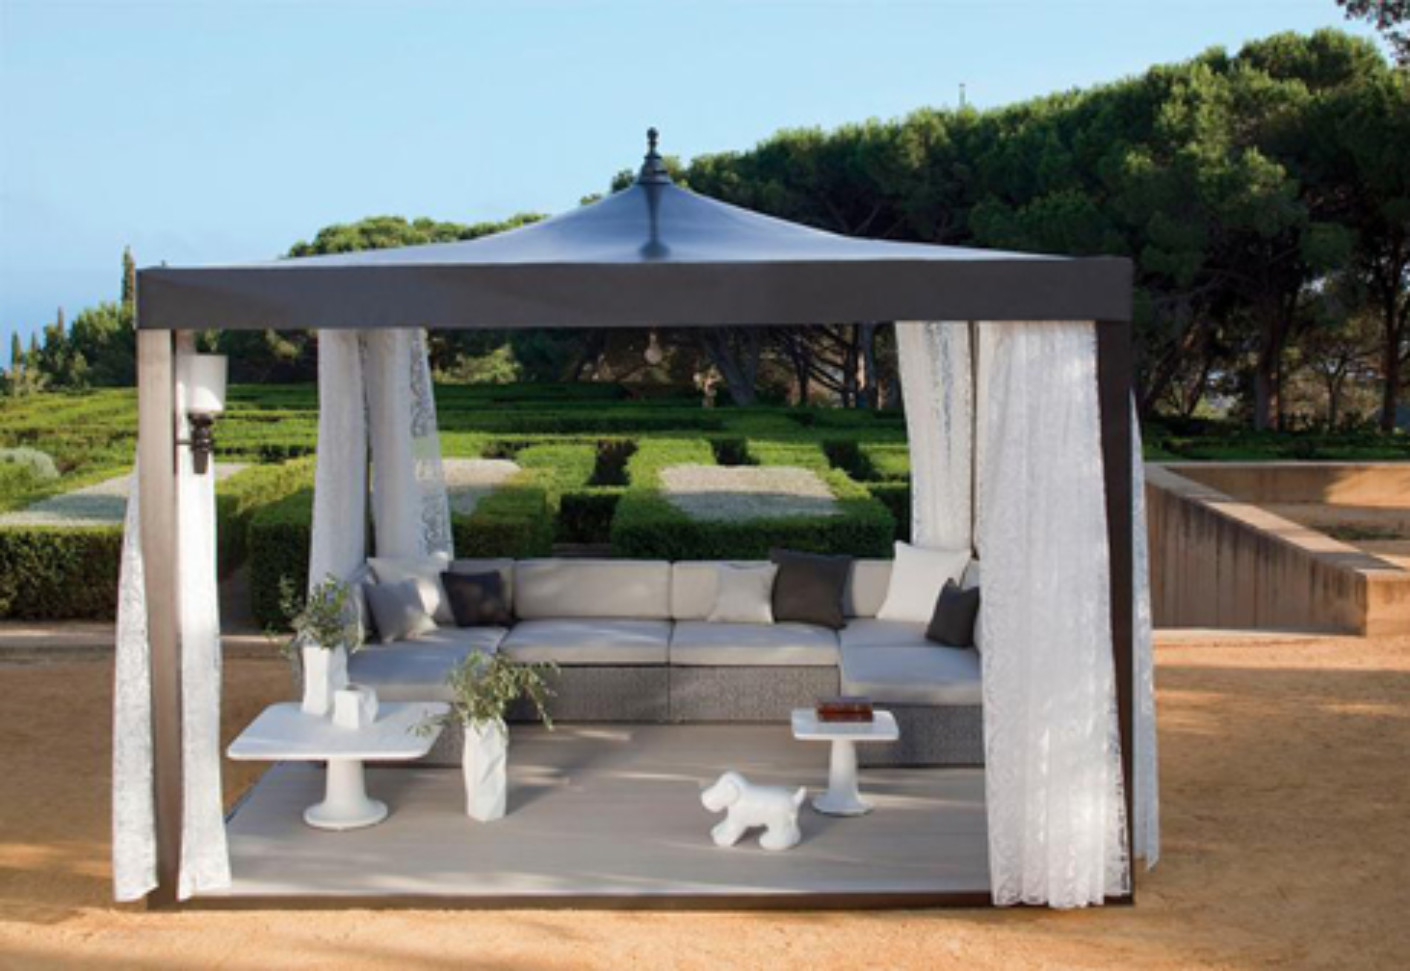 Atmosphere pavillion by kettal stylepark for Outdoor cabana furniture